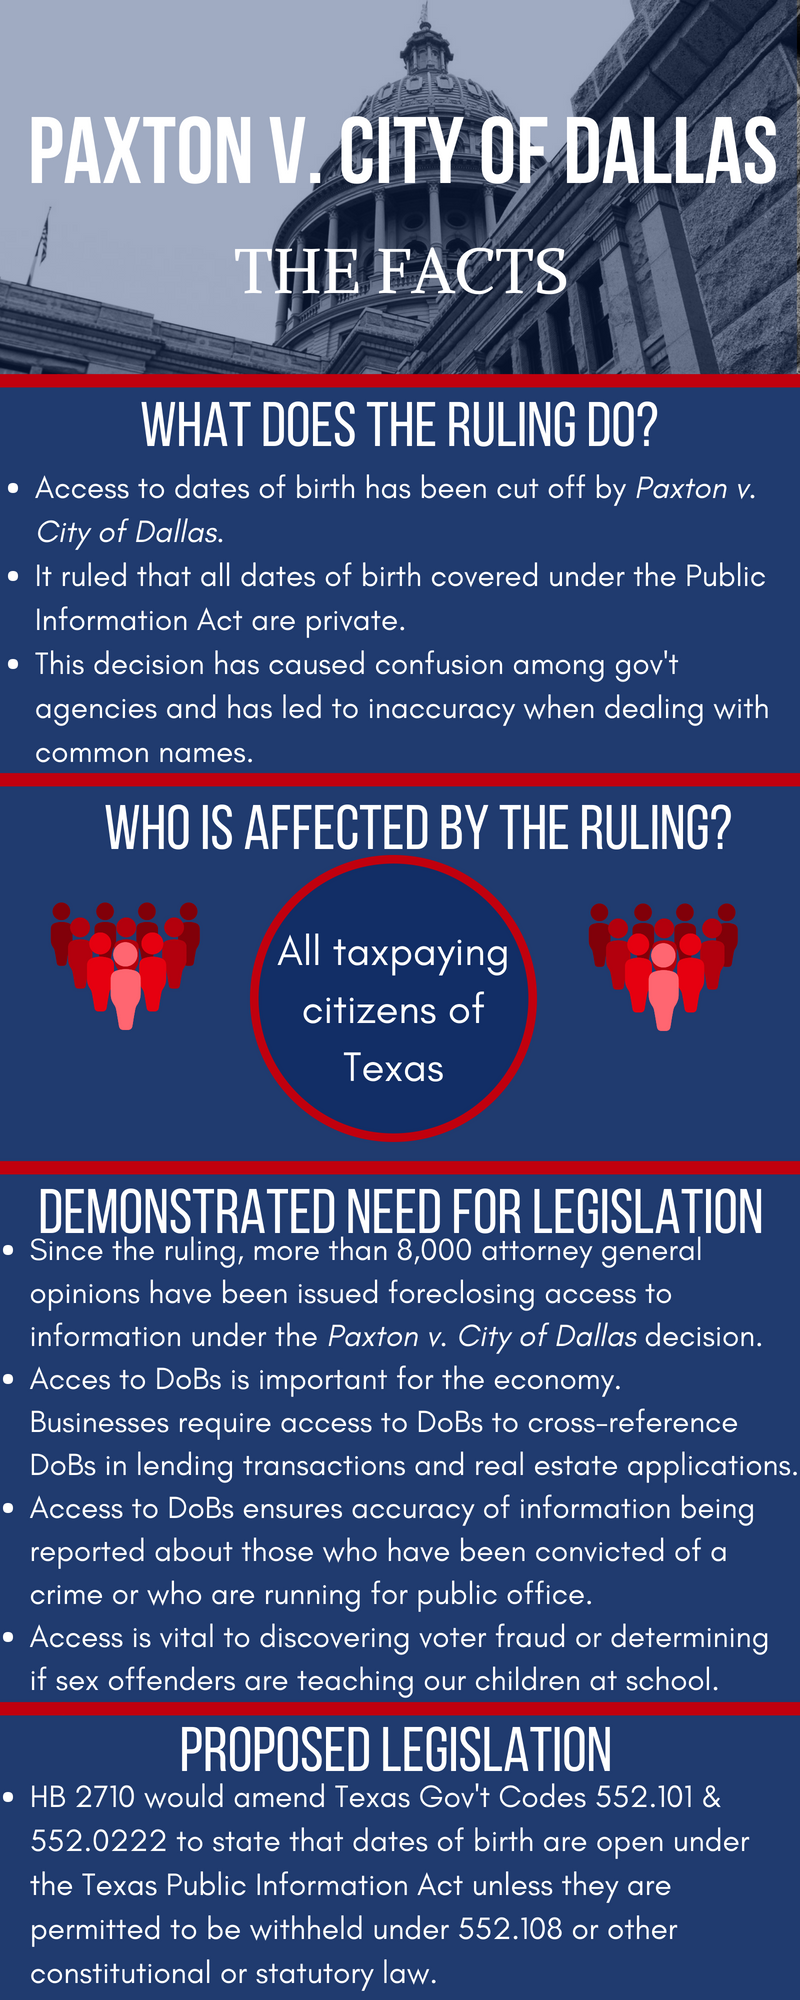 Paxton v. City of Dallas